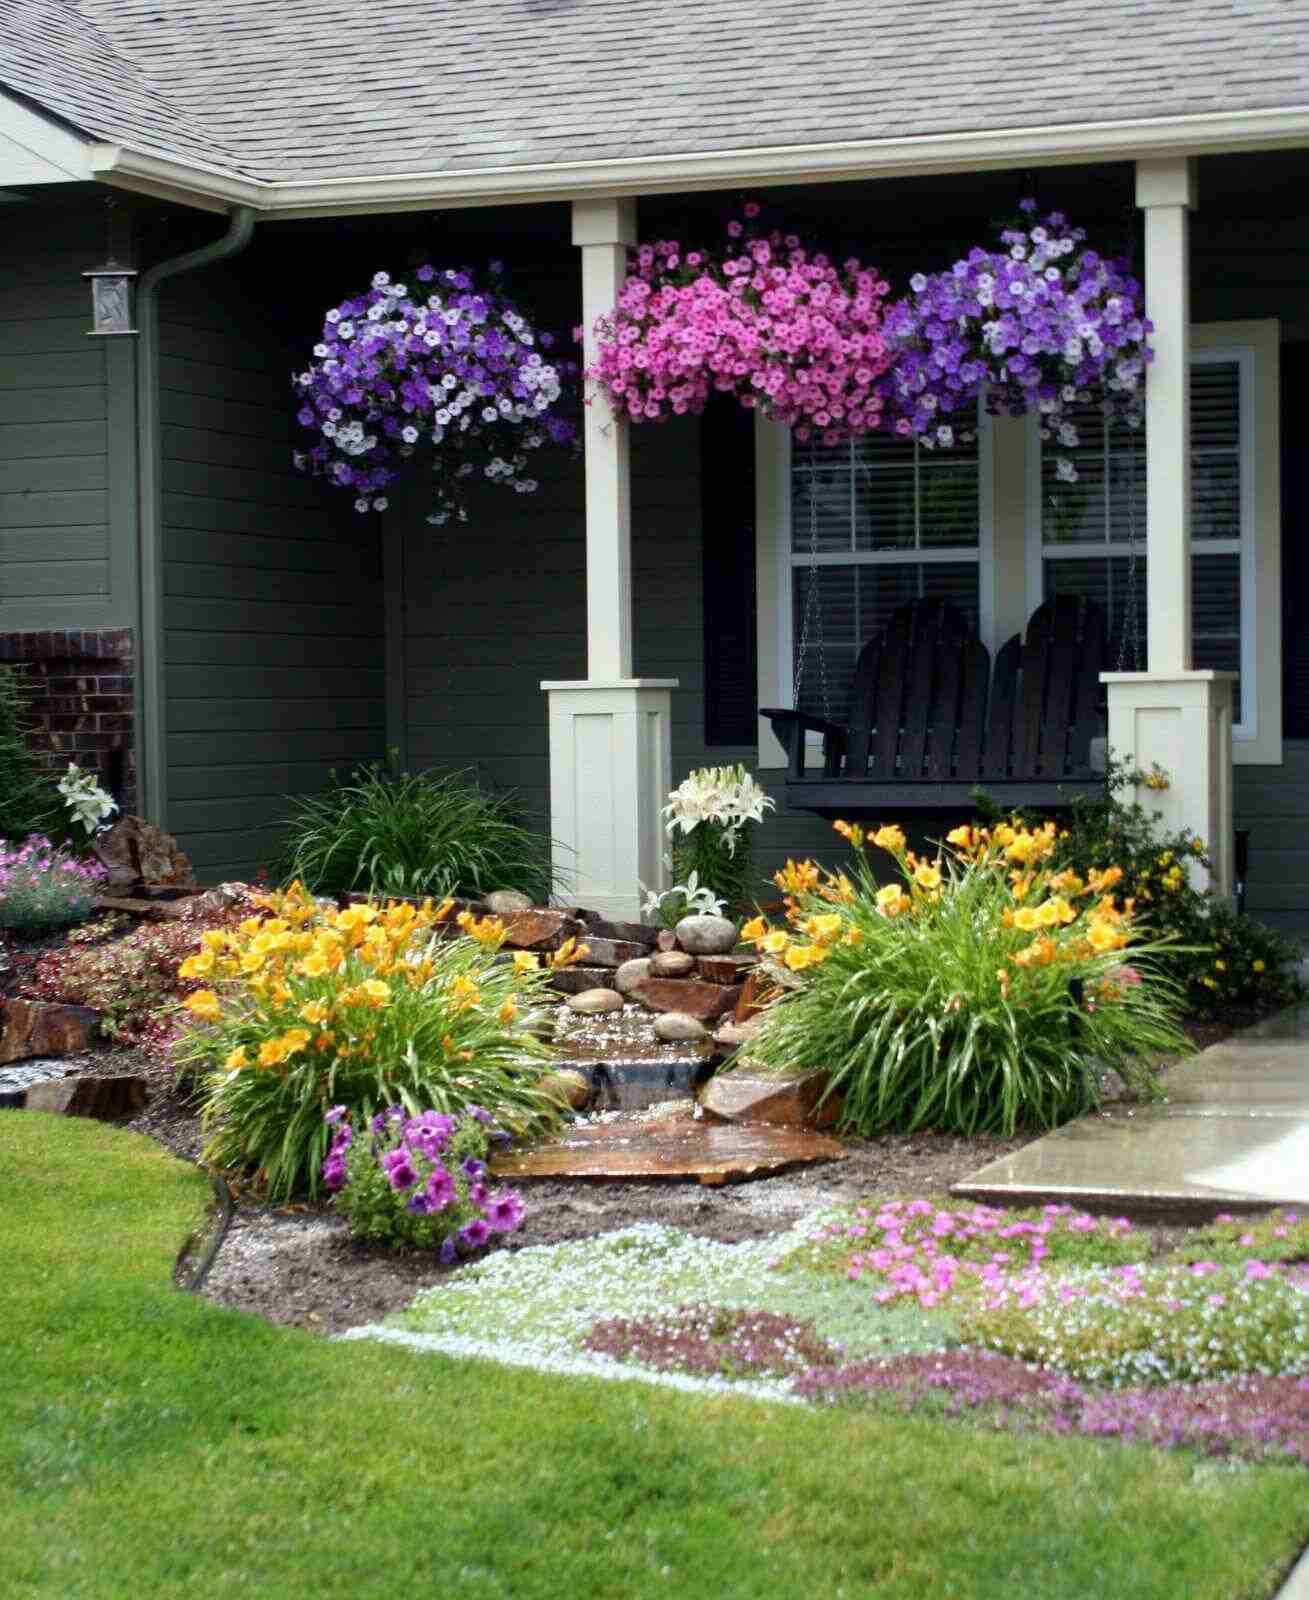 30+ Amazing DIY Front Yard Landscaping Ideas And Designs